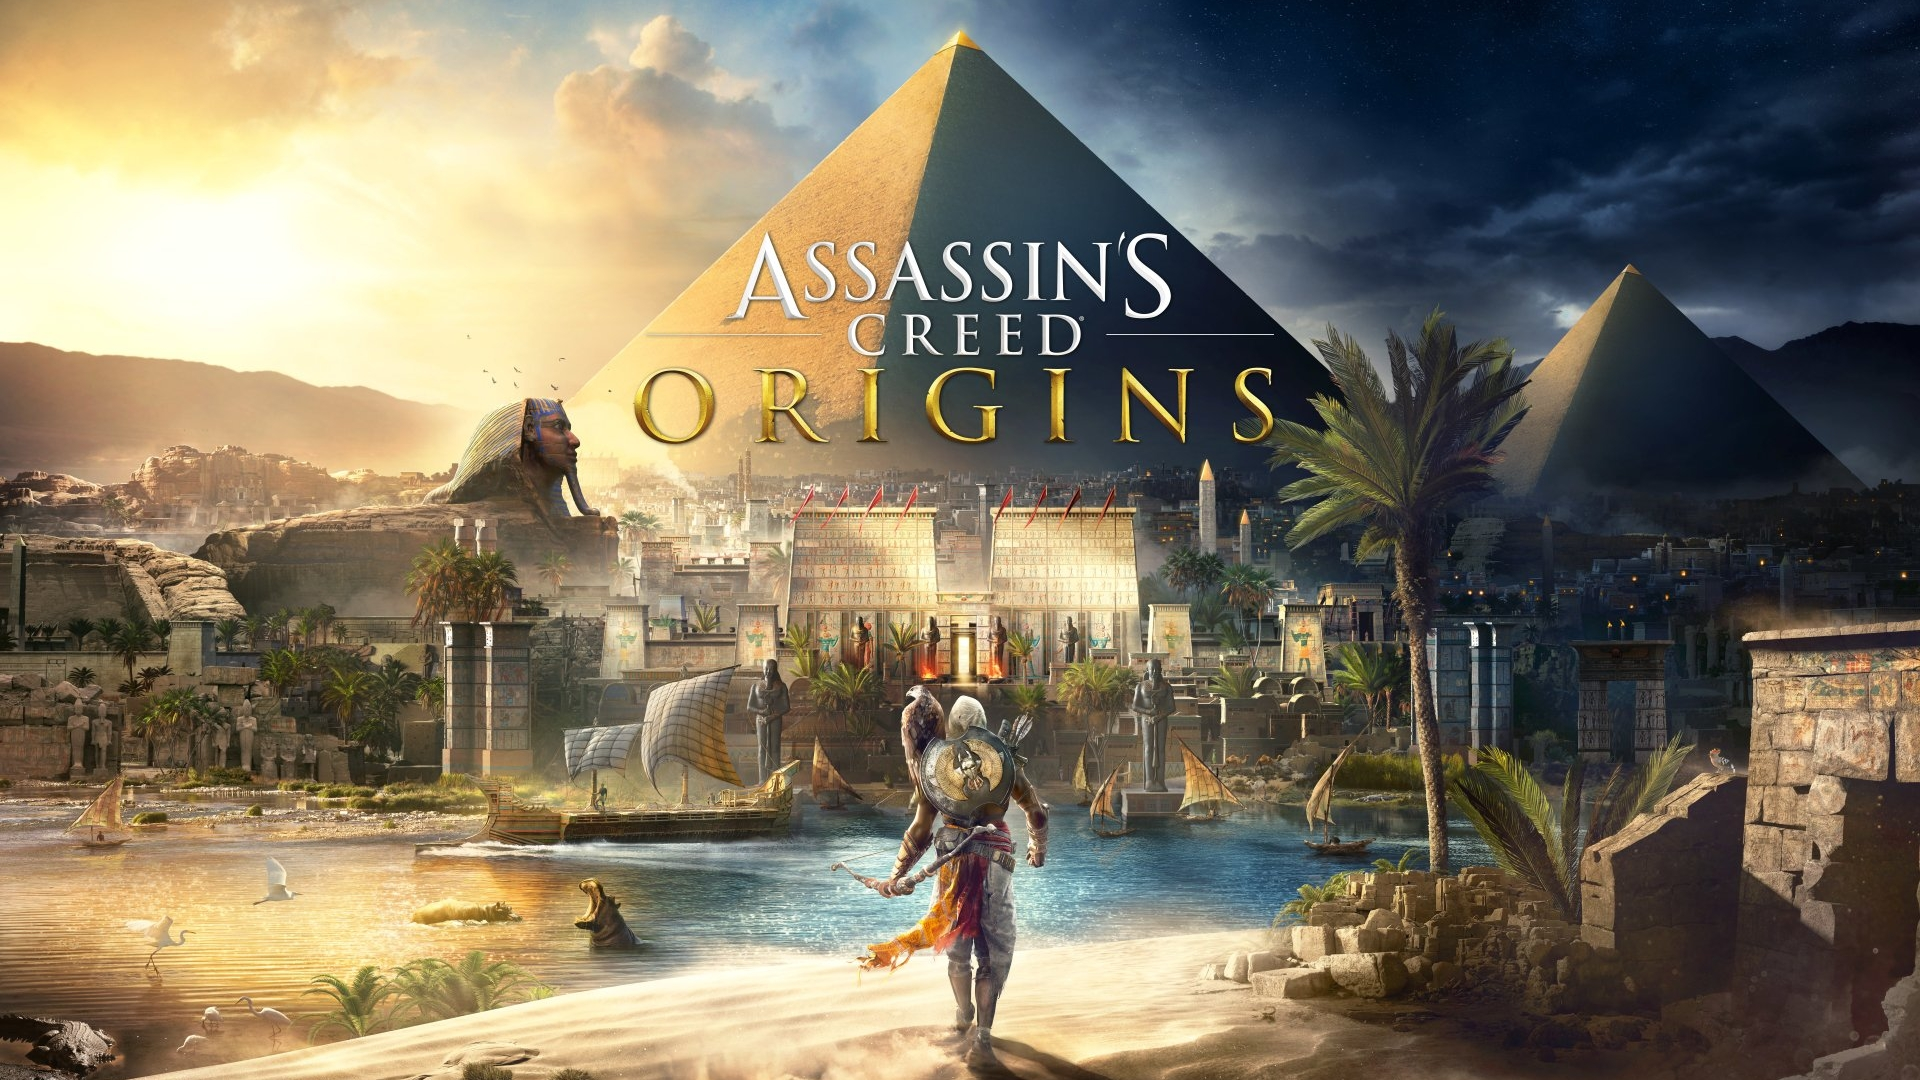 Assassin's Creed: Origins - Welcome to a Nerdentials Let's Play! Featuring your nerd host Joe! Join him in this deep dive into ancient Egypt!